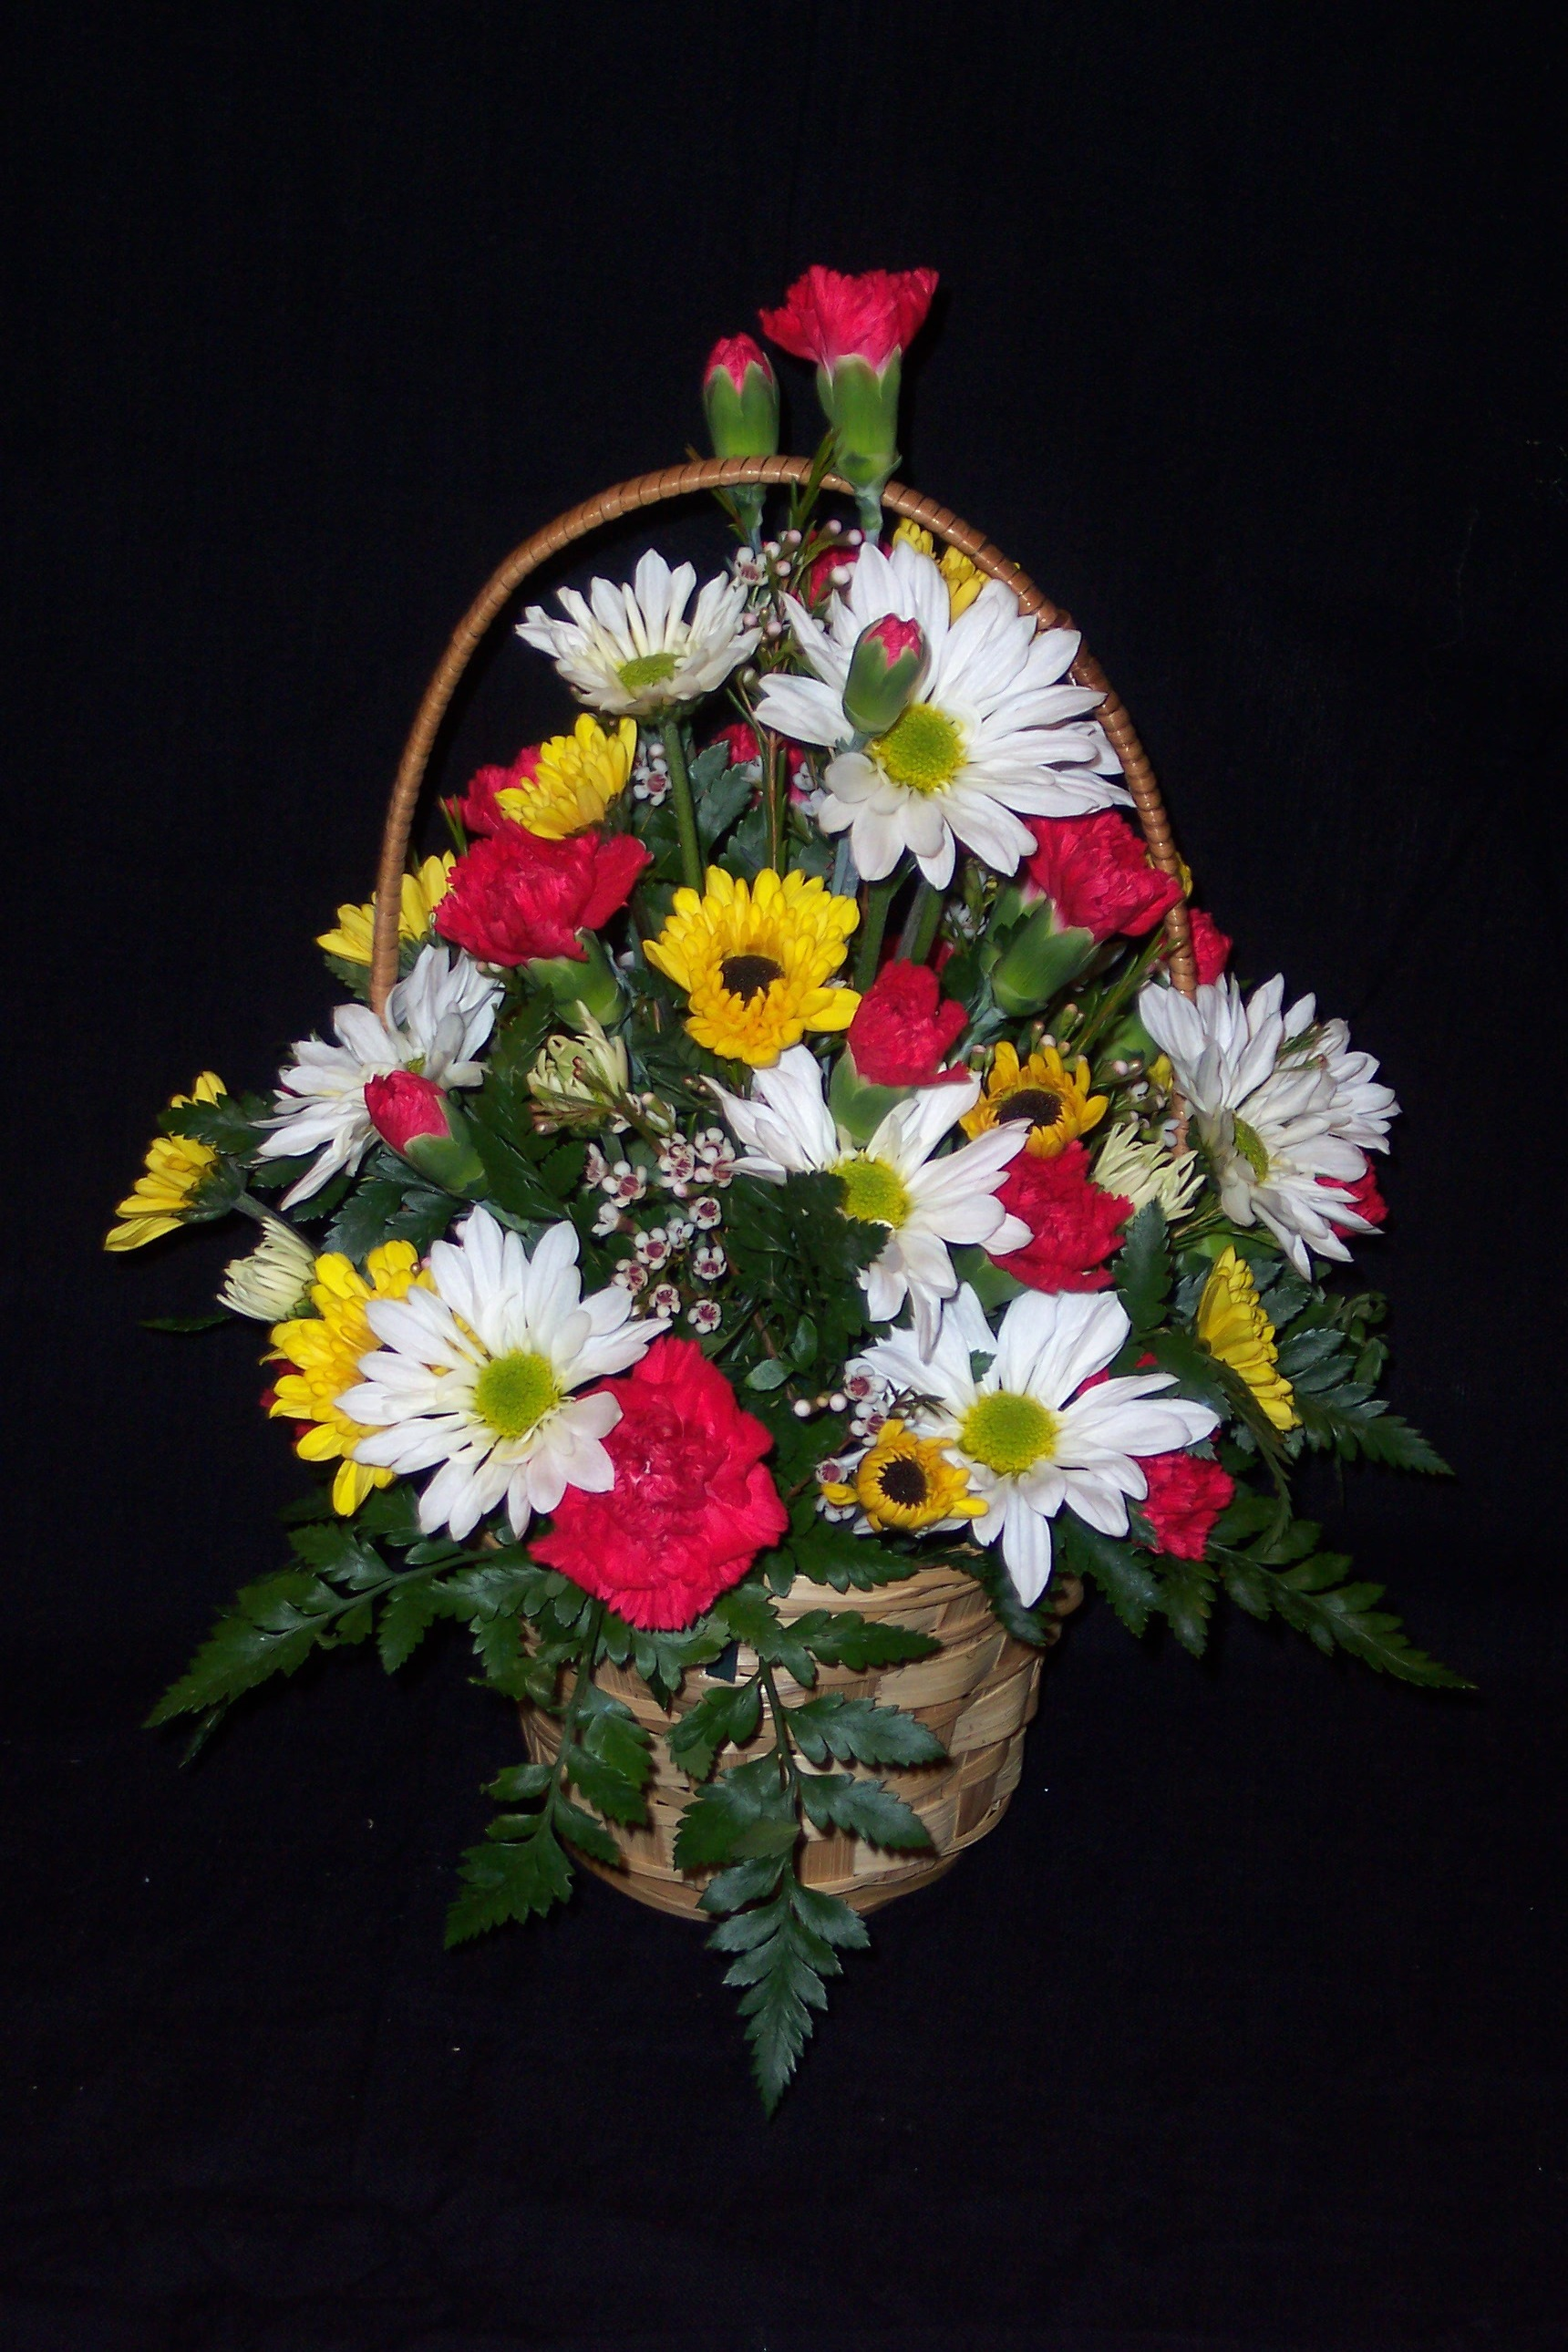 Seasonal Arrangement in Basket